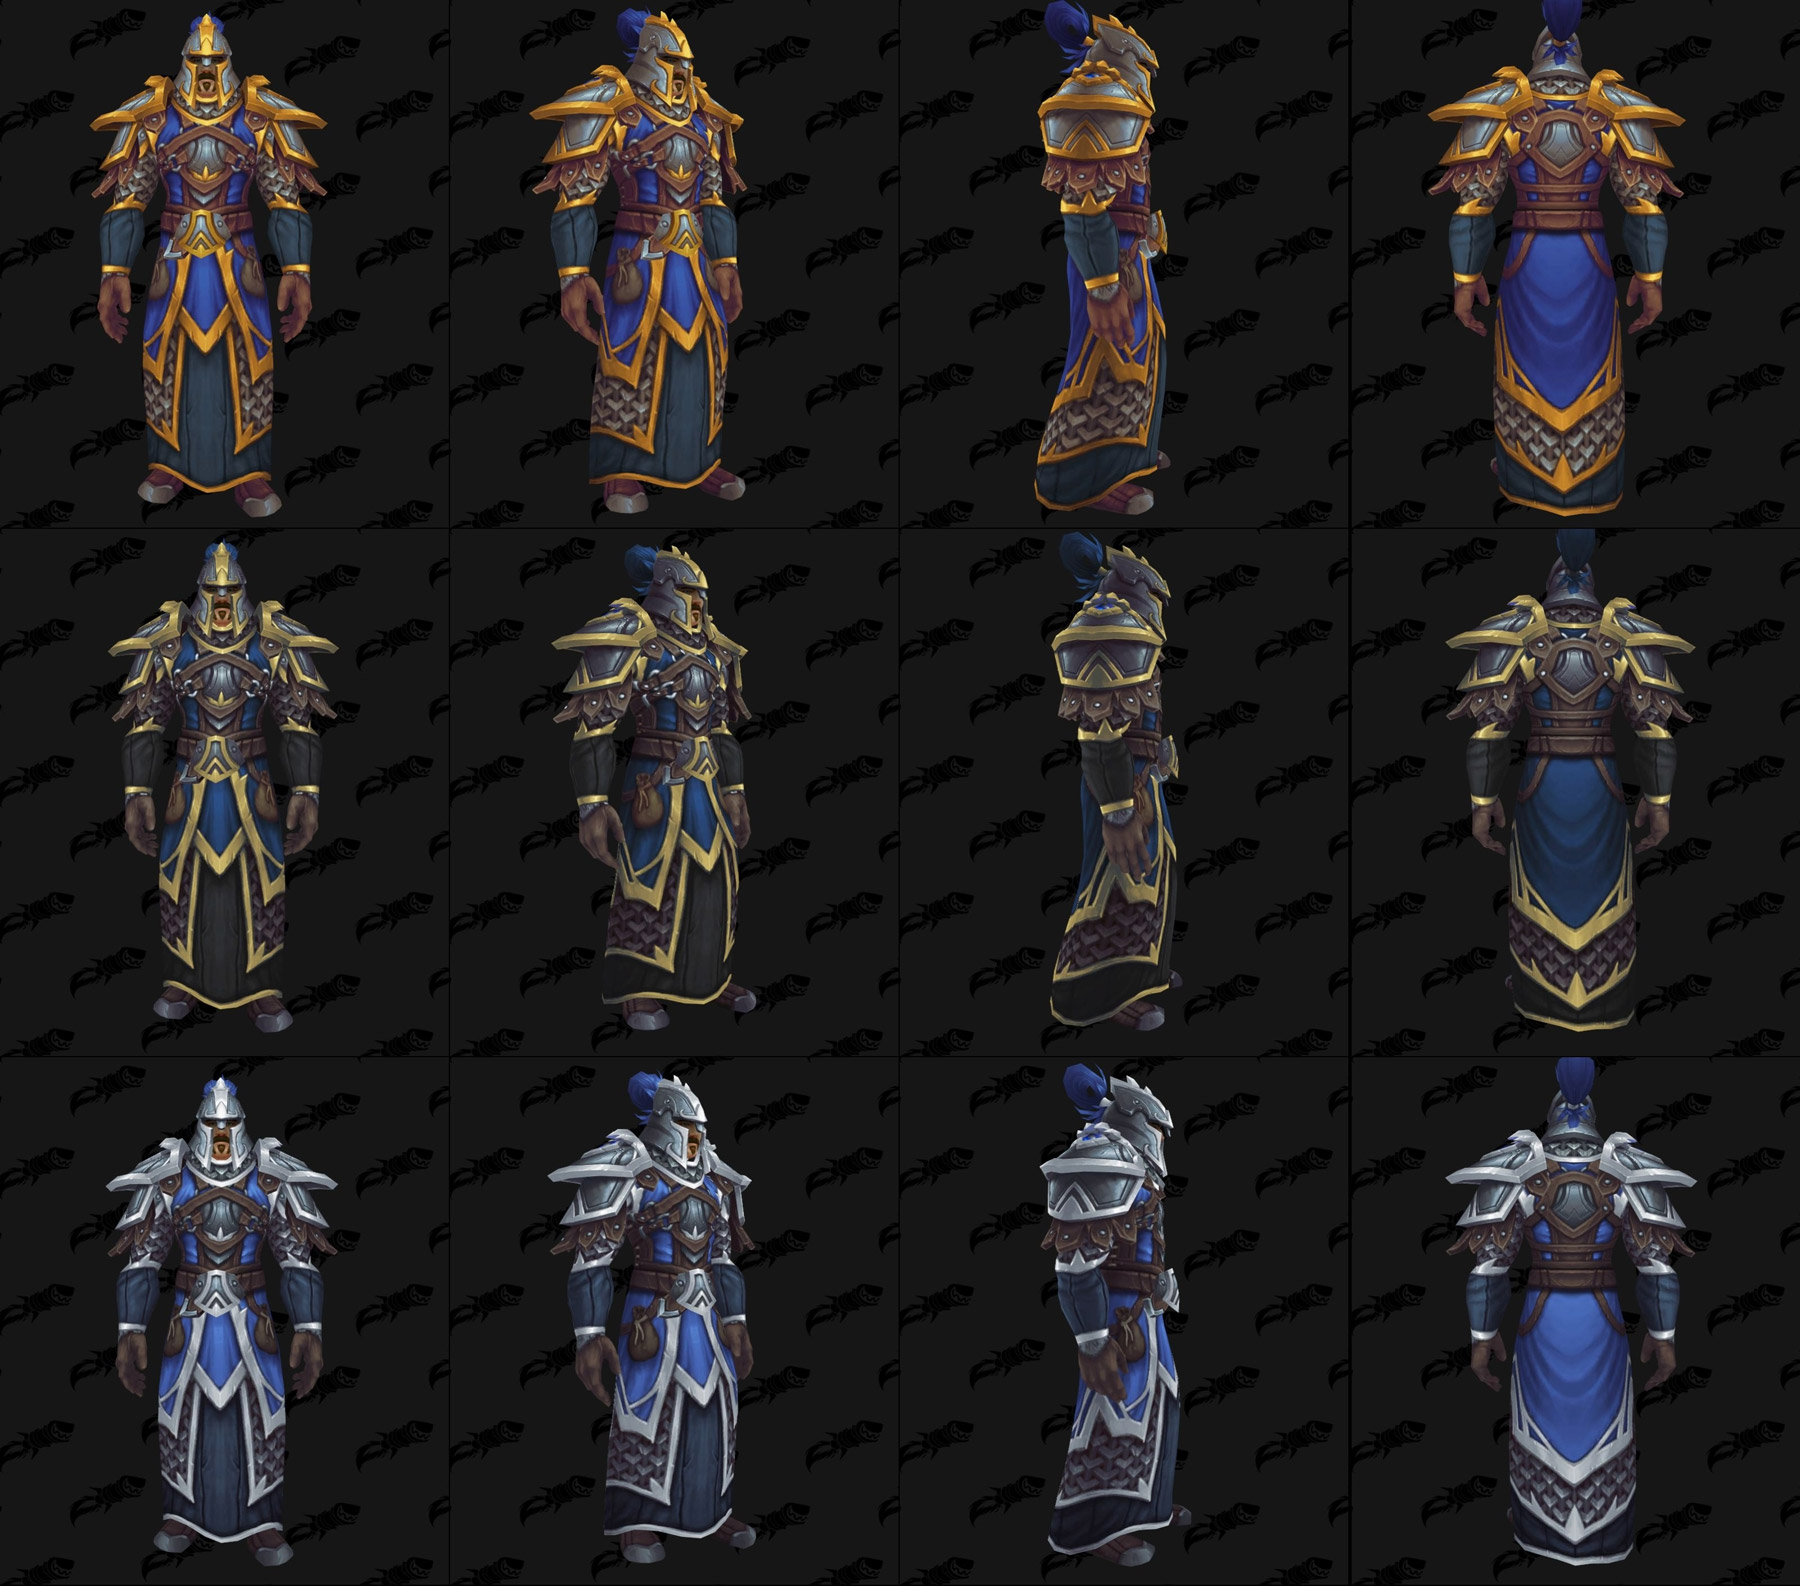 Ensembles Front de guerre (Alliance) en maille - Tier 2 - Battle for Azeroth